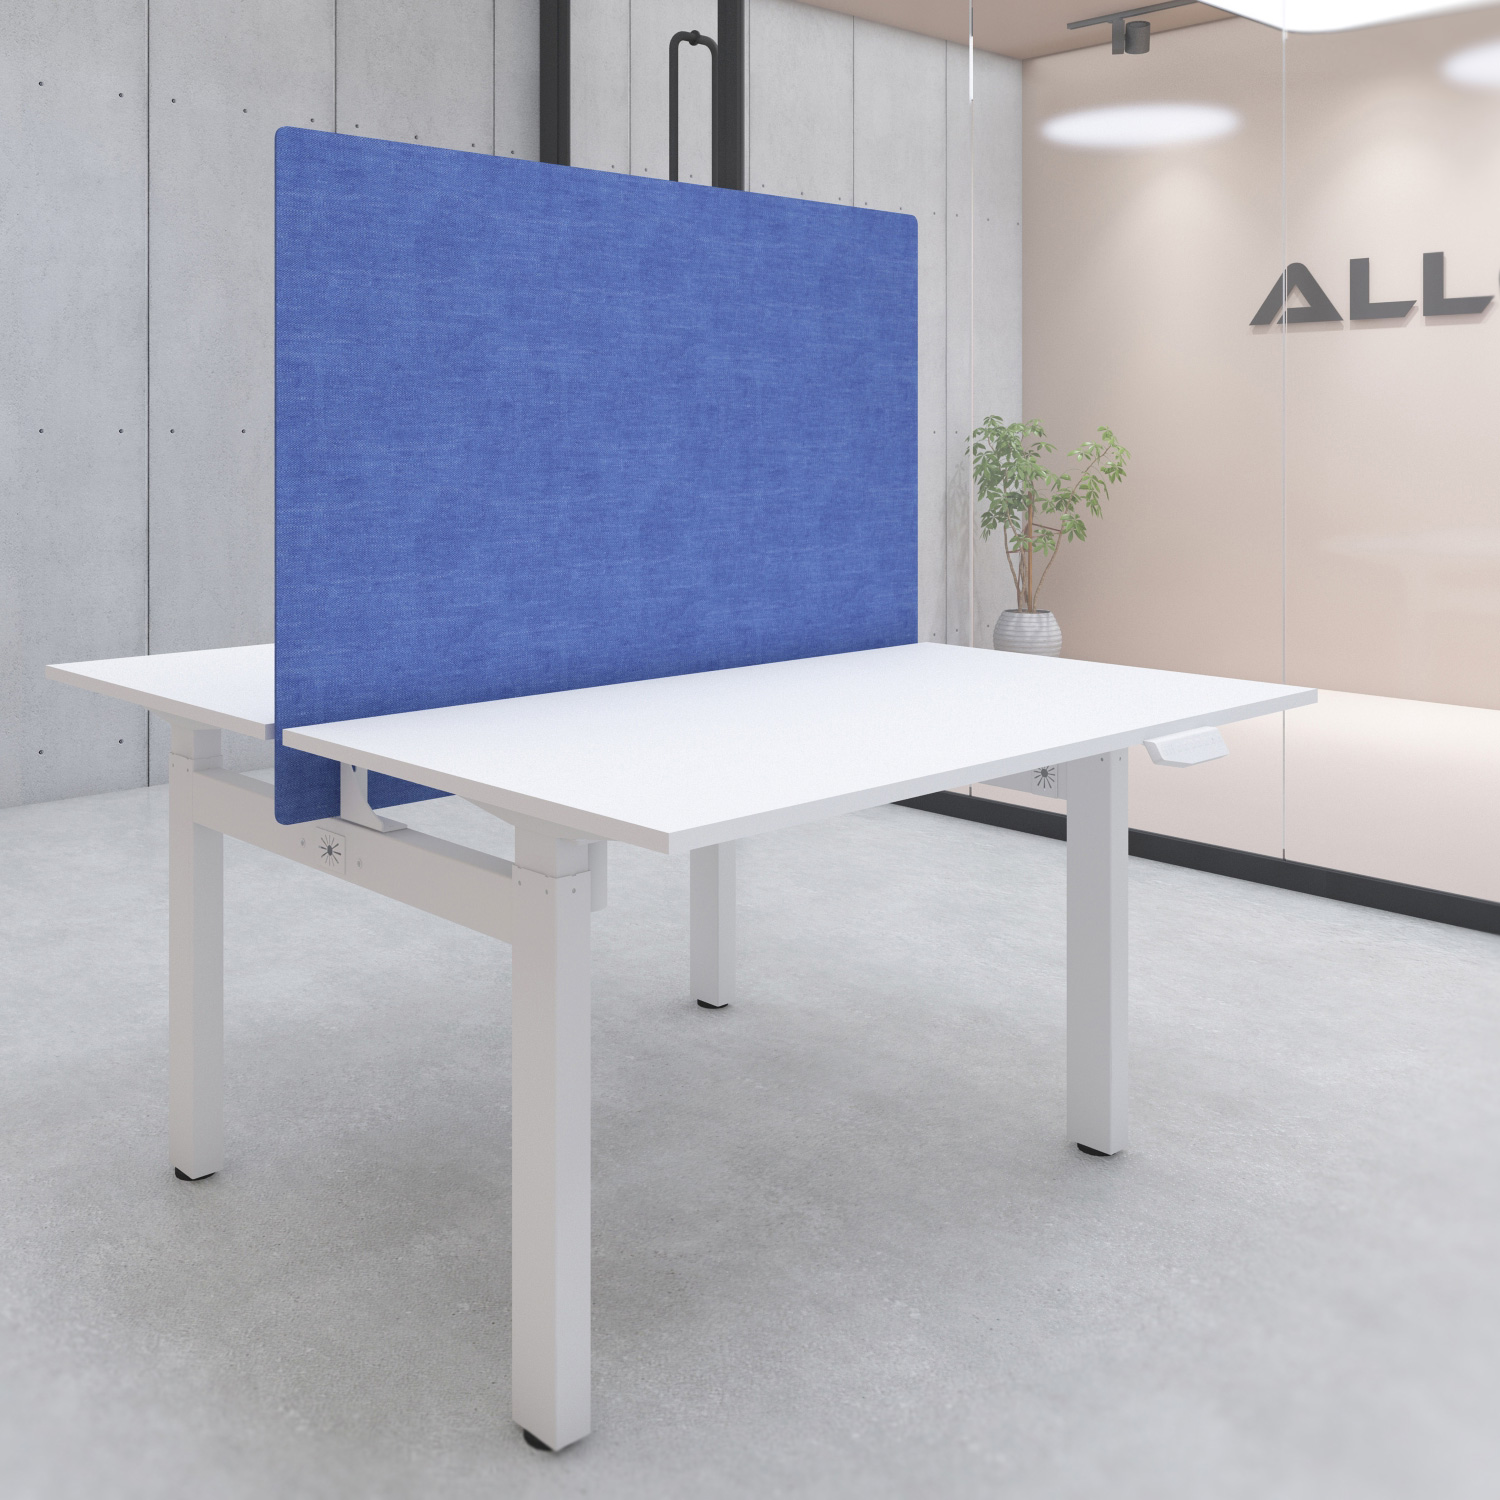 s149l desk privacy screen with mounting kit 1400x900 blue